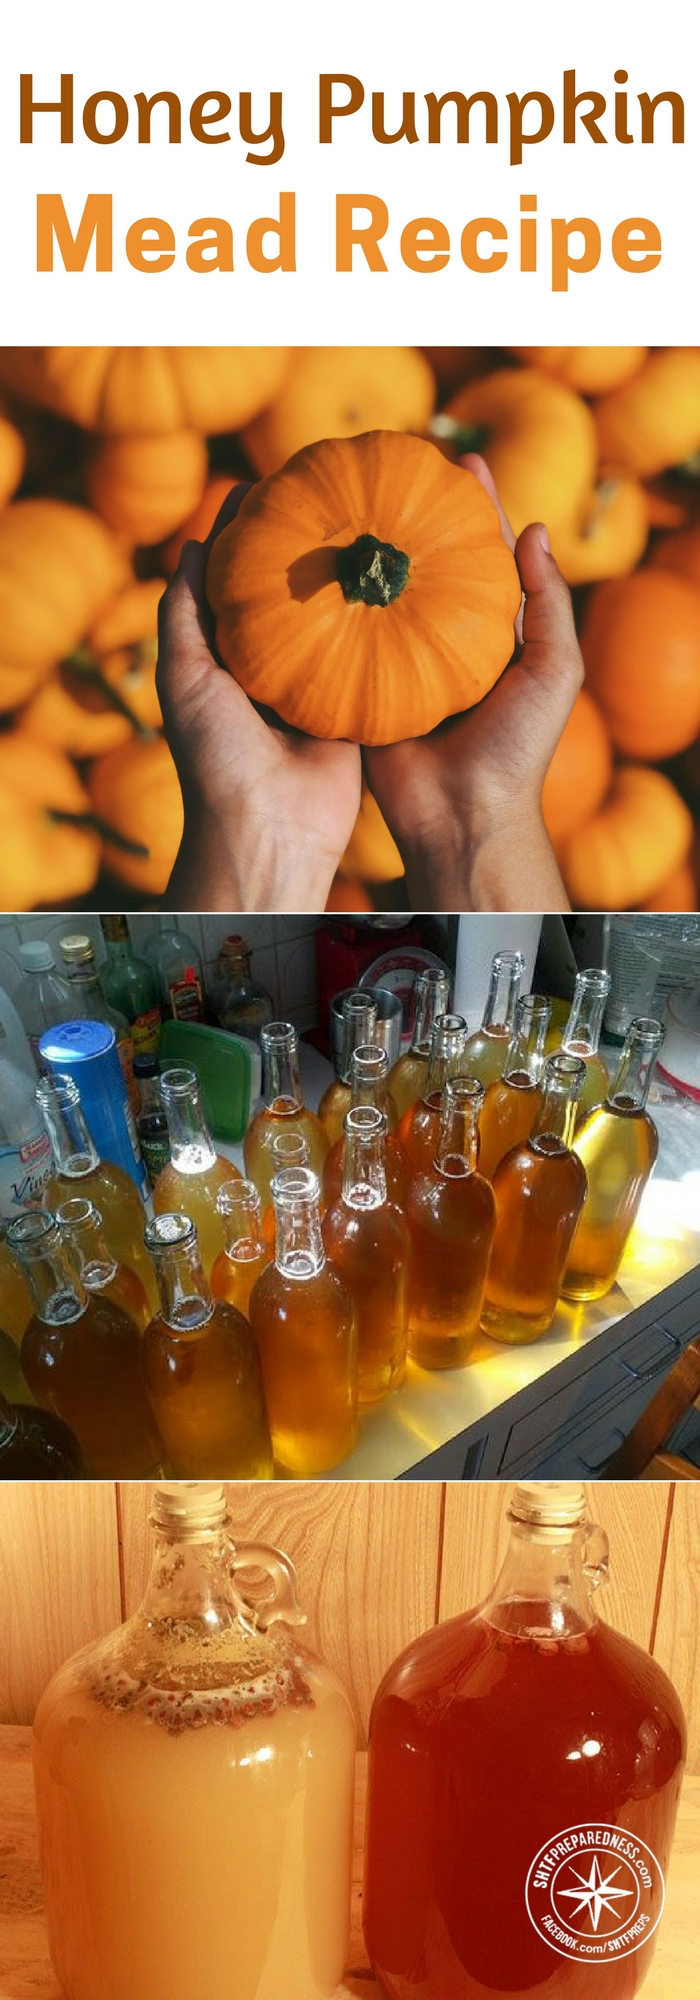 Honey Pumpkin Mead Recipe - According to gotmead.tumblr.com this mead is the color of a ripe peach and smells like autumn leaves - perfect for a Harvest blot. I have to agree, I made something very similar a few years ago around this time and it was the best tasting mead ever!